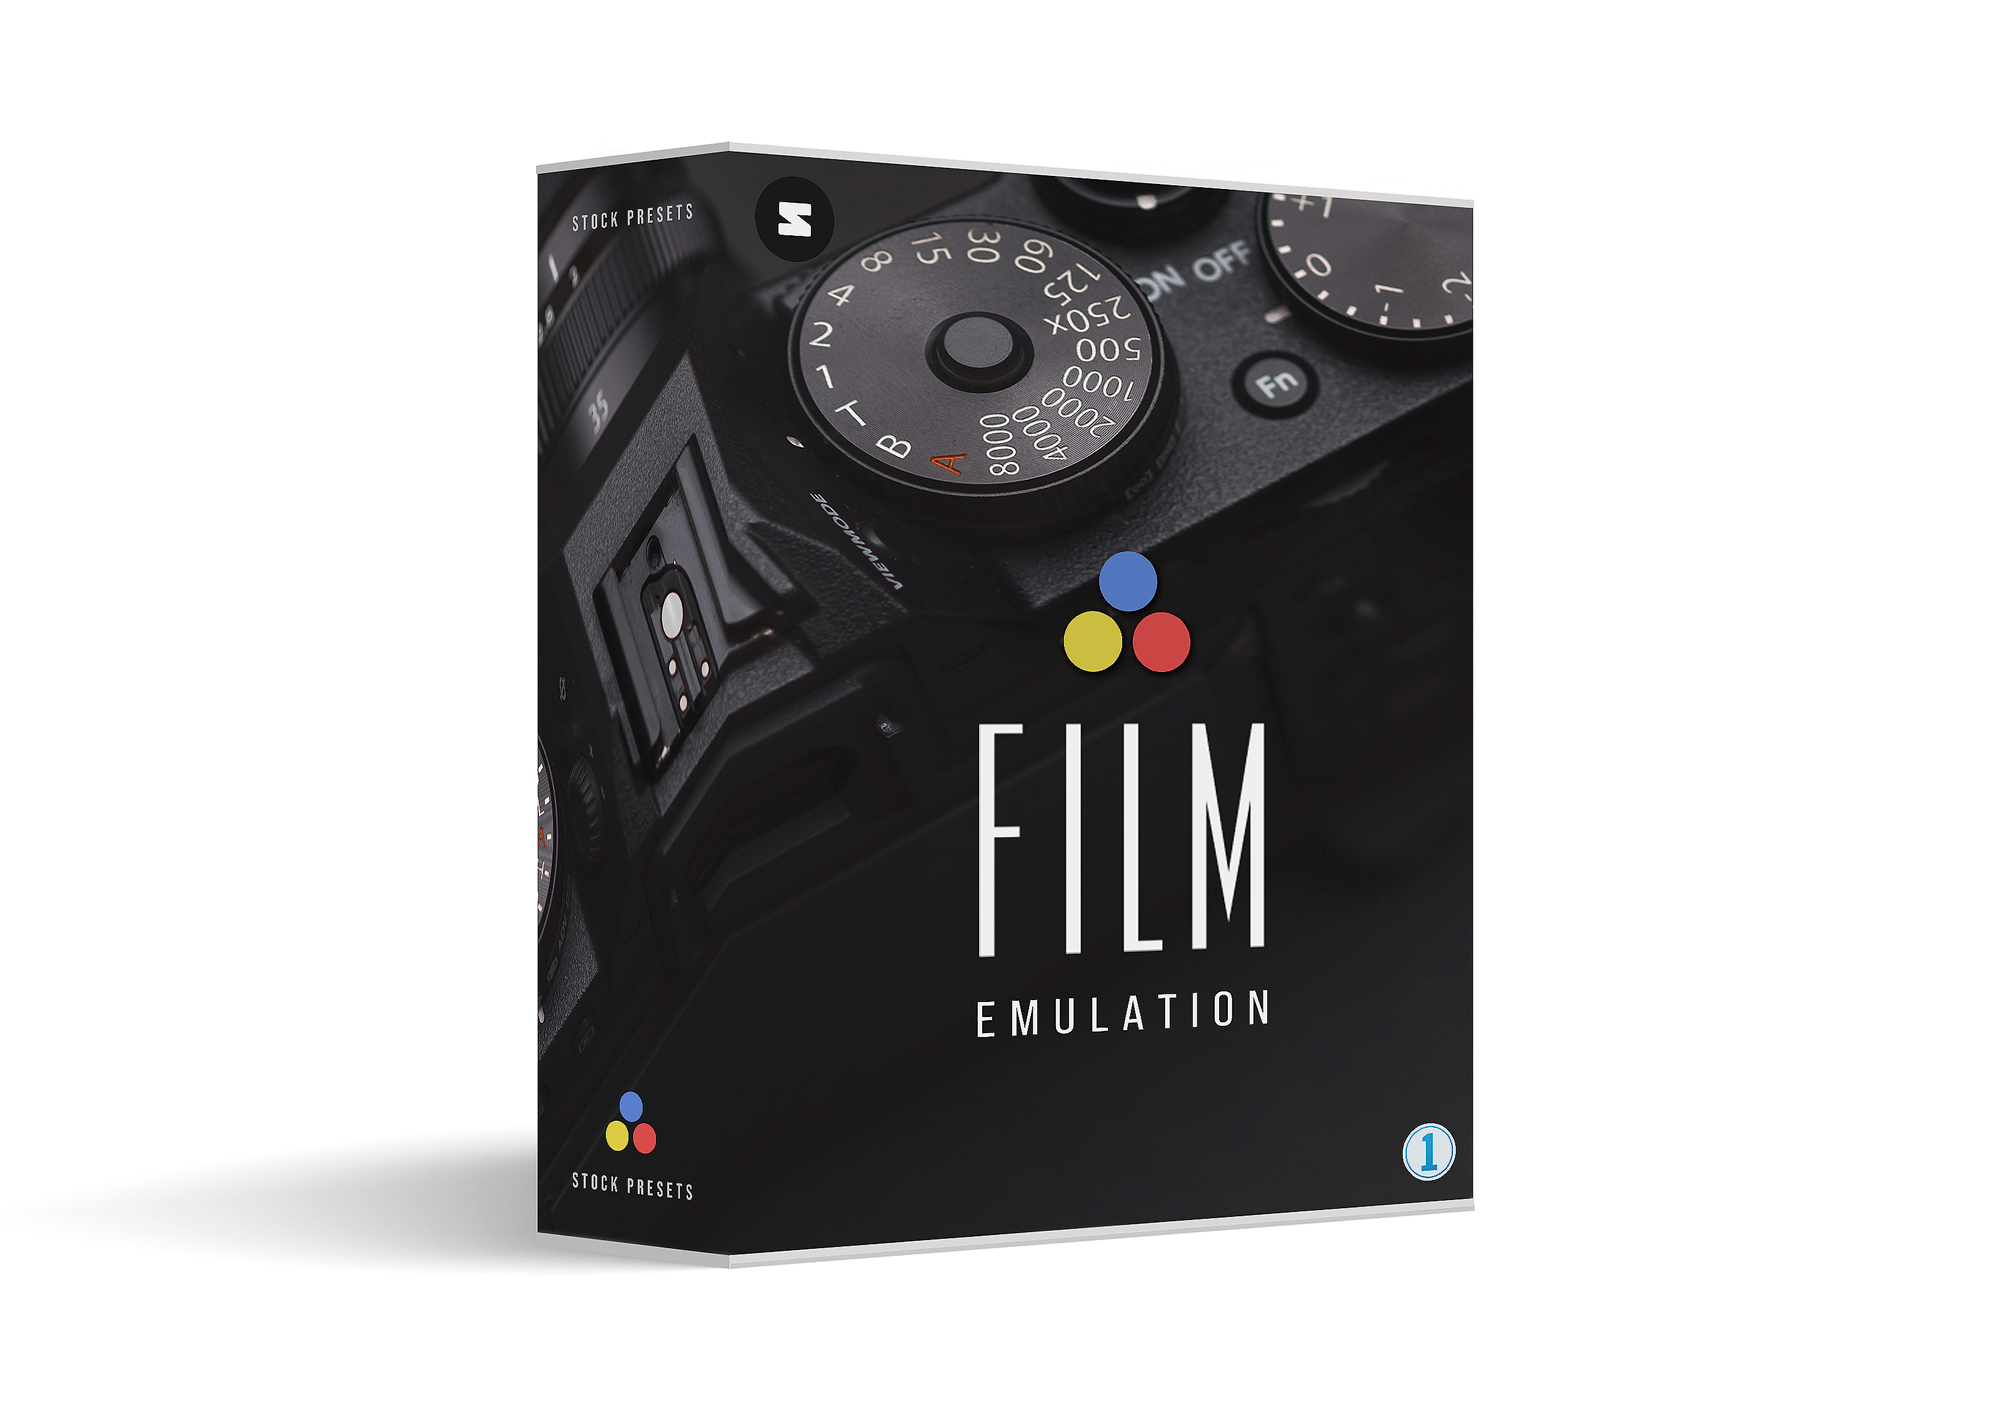 Film-Emulation-Collection-Capture-One-Presets-Stockpresets